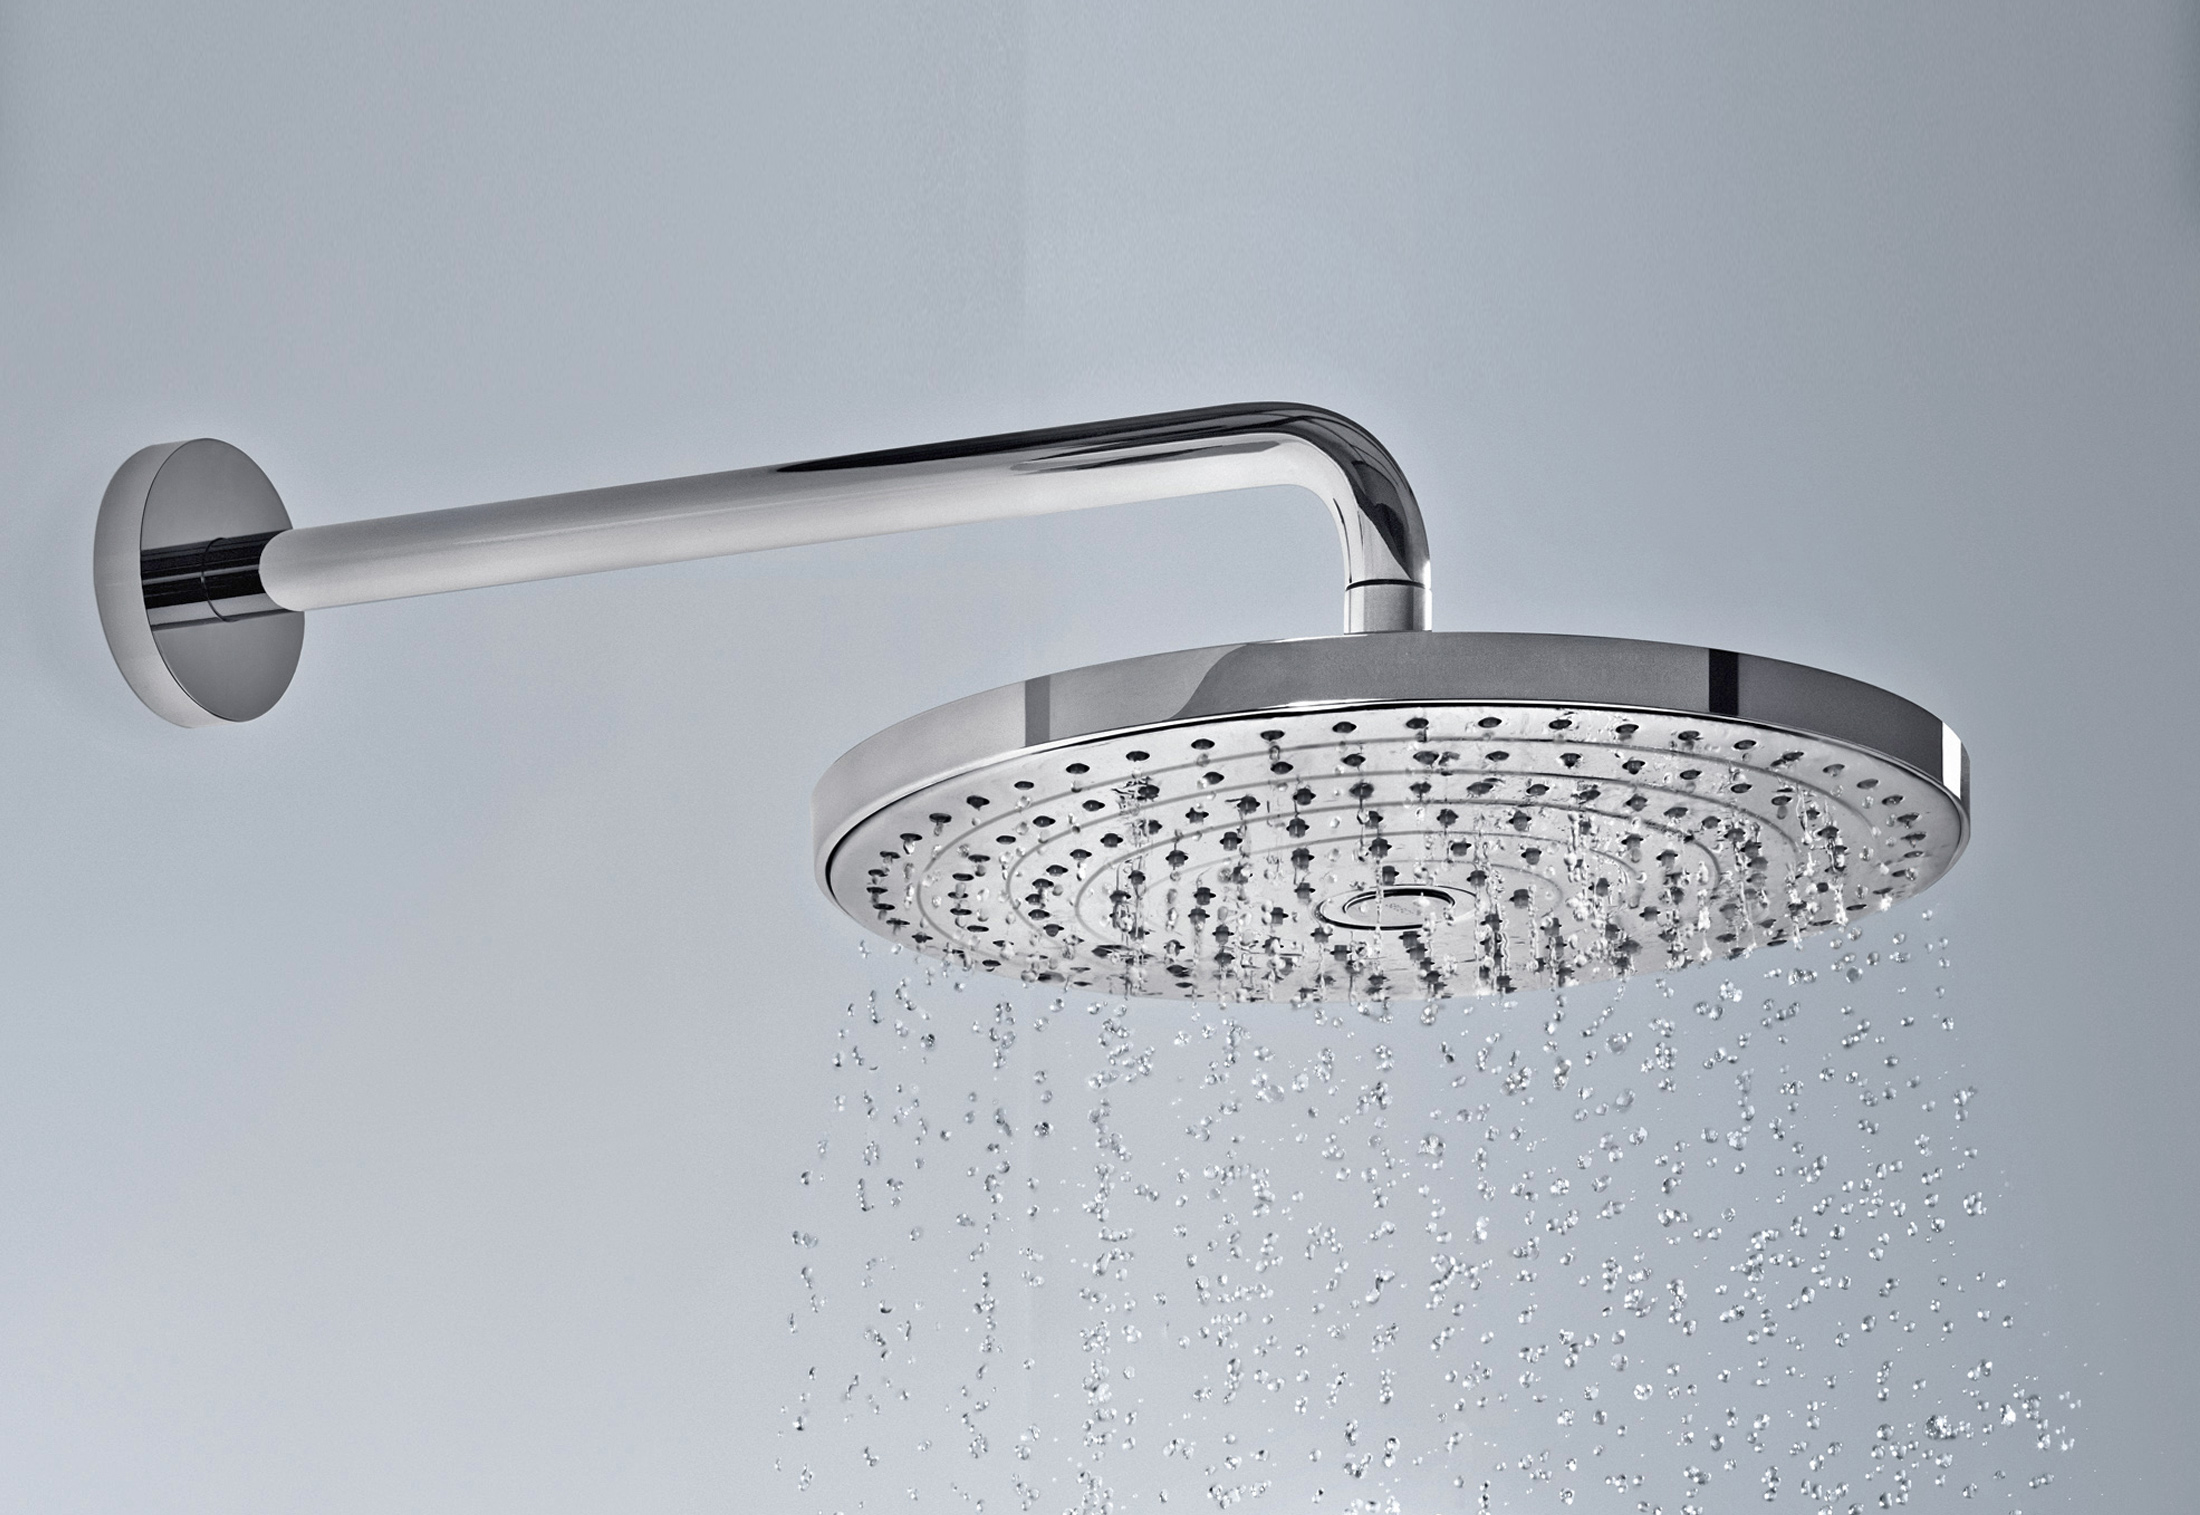 Raindance Select overhead showers S300 by Hansgrohe | STYLEPARK